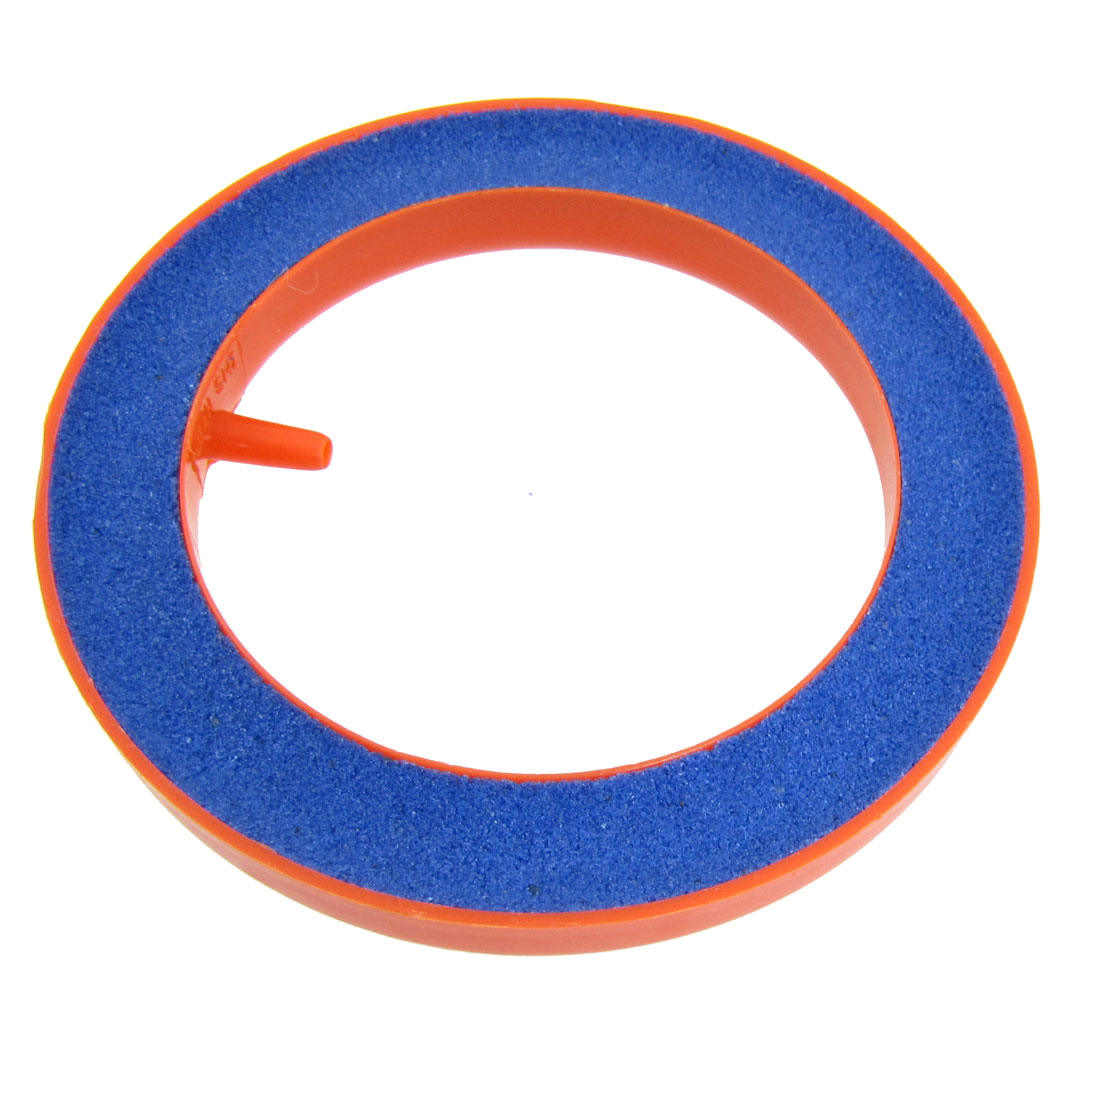 "3.94"" OD Round Mineral Bubble Air Stone Orange Blue for Aquarium Tank"